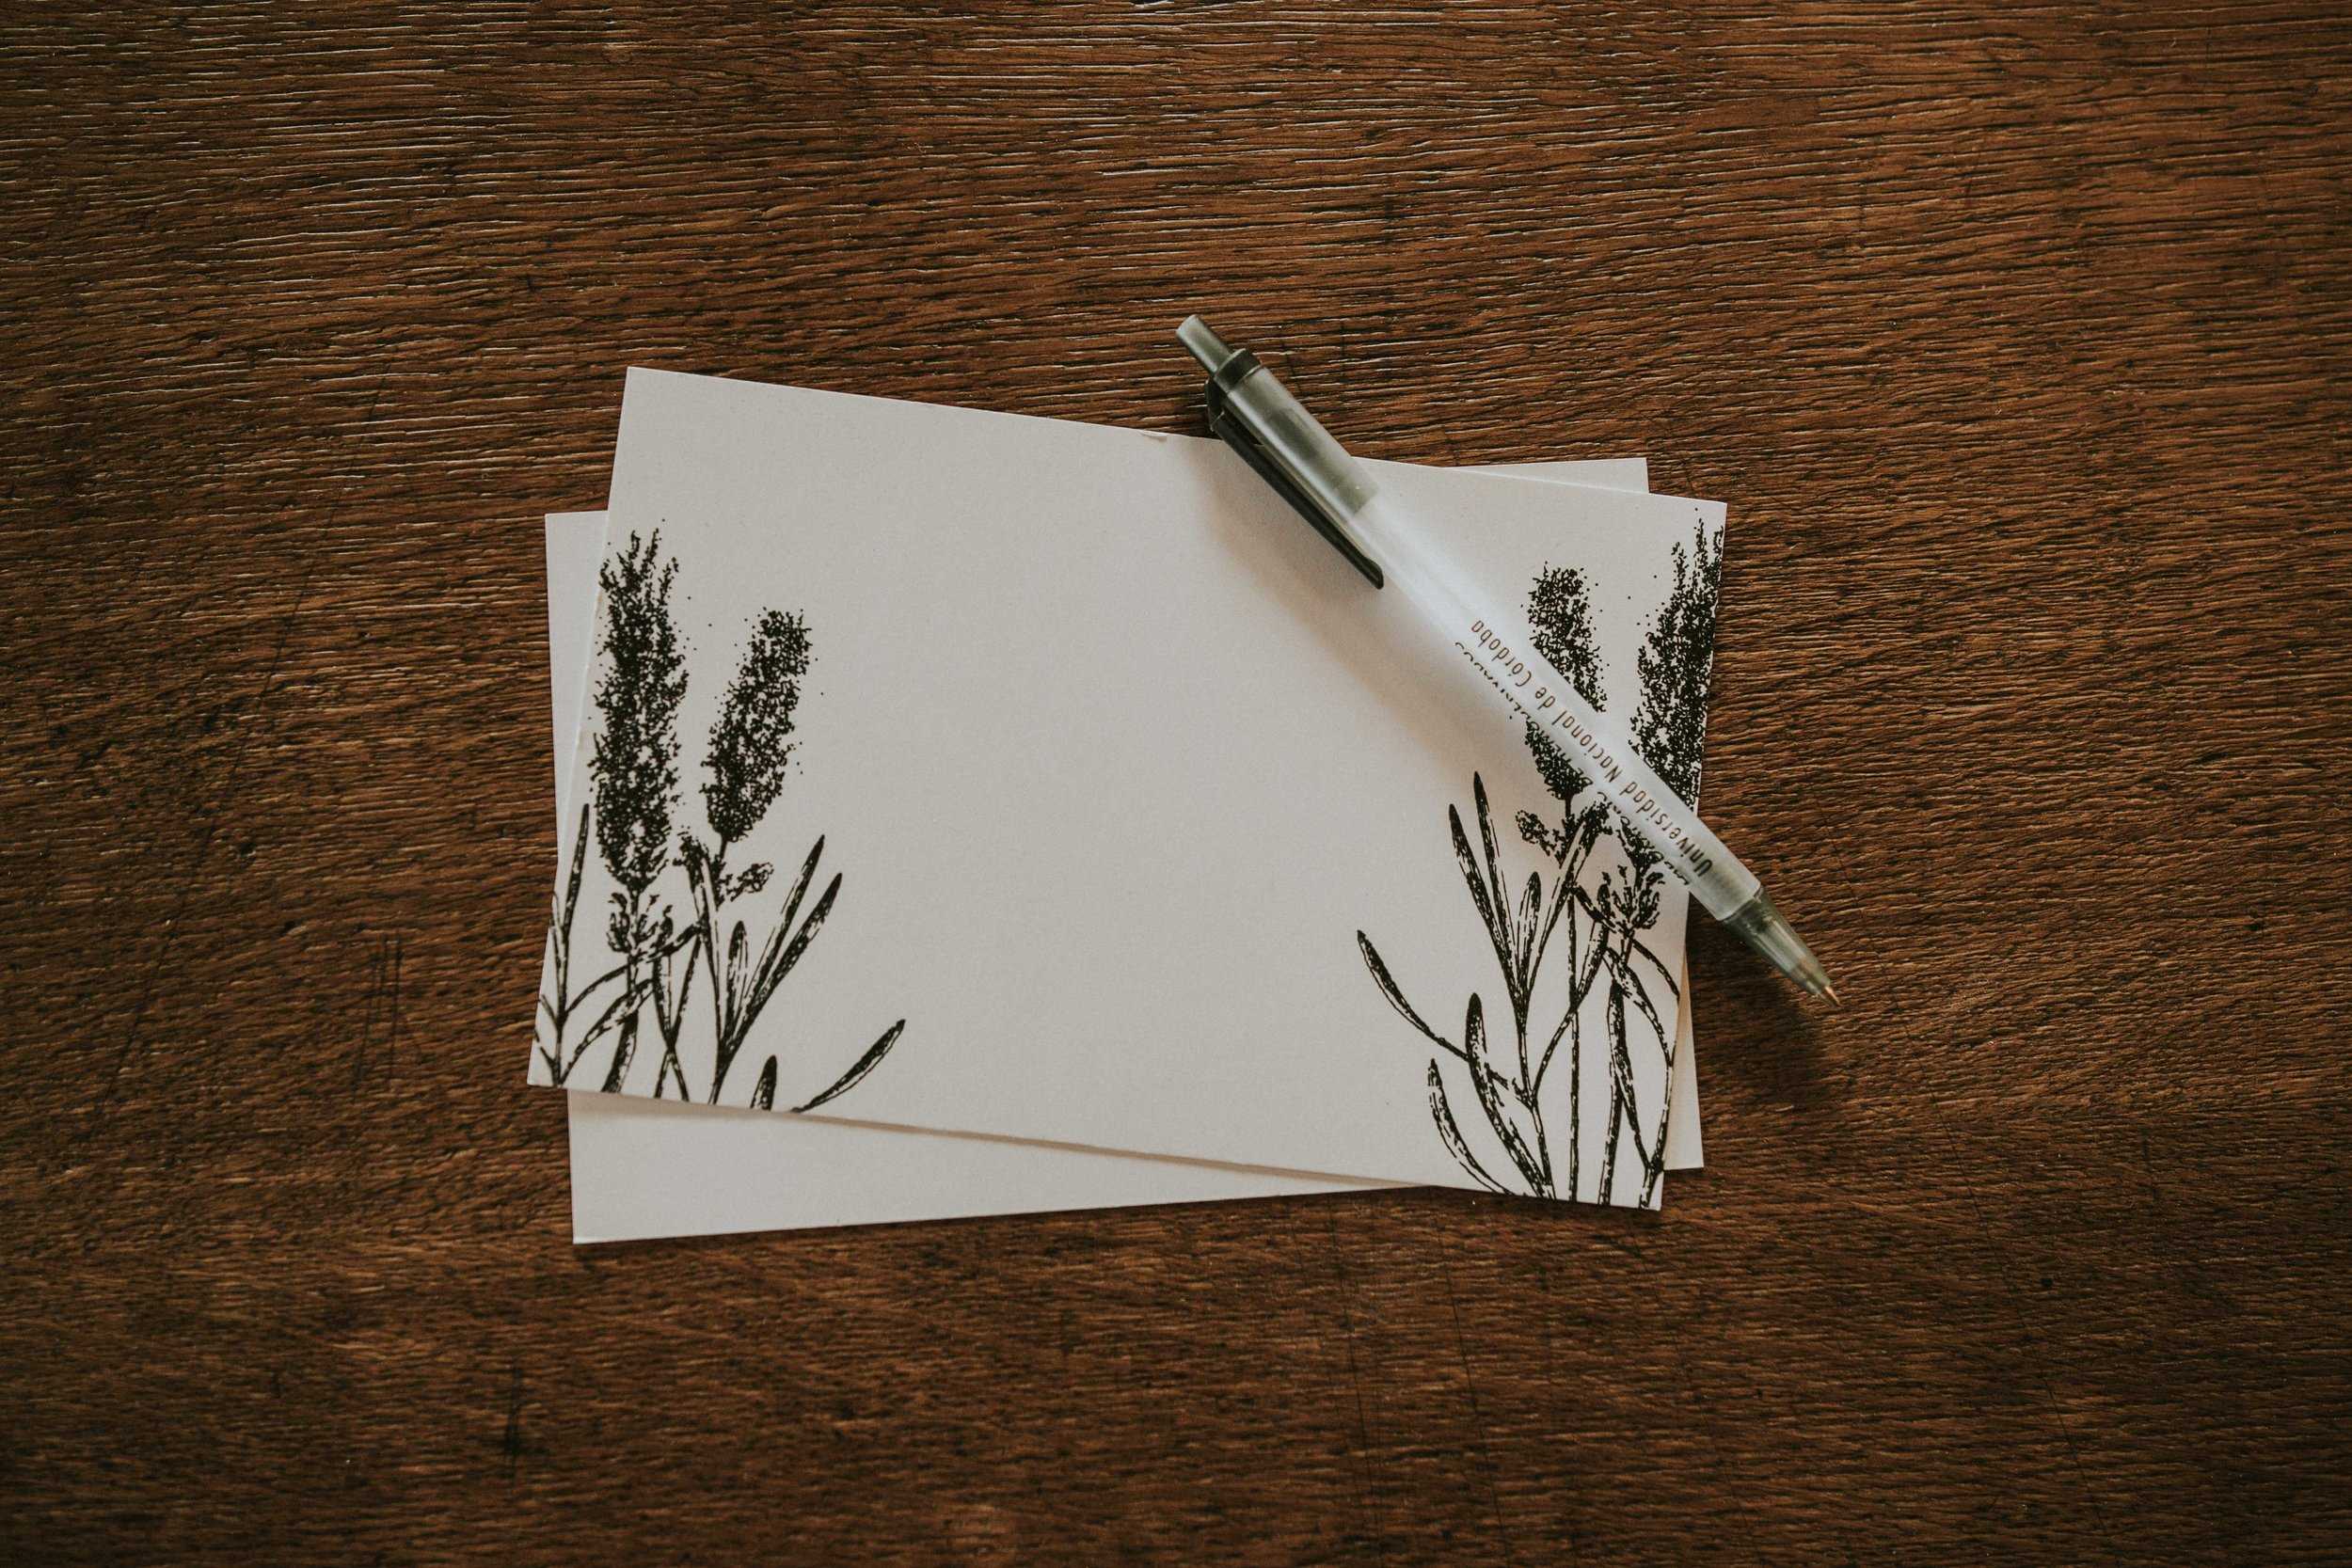 Blank card with floral design and pen sitting on a wooden desk.